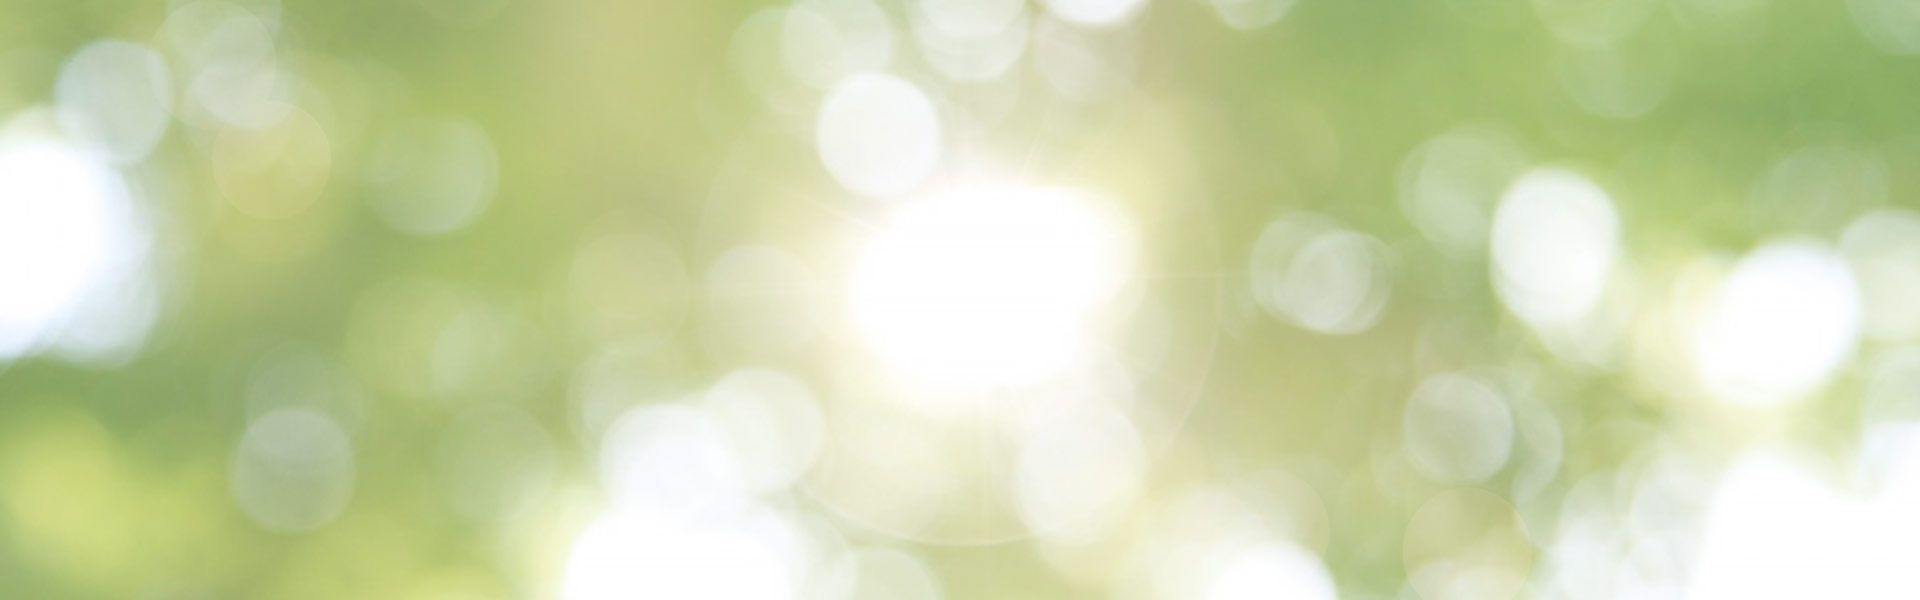 green and white light backroung